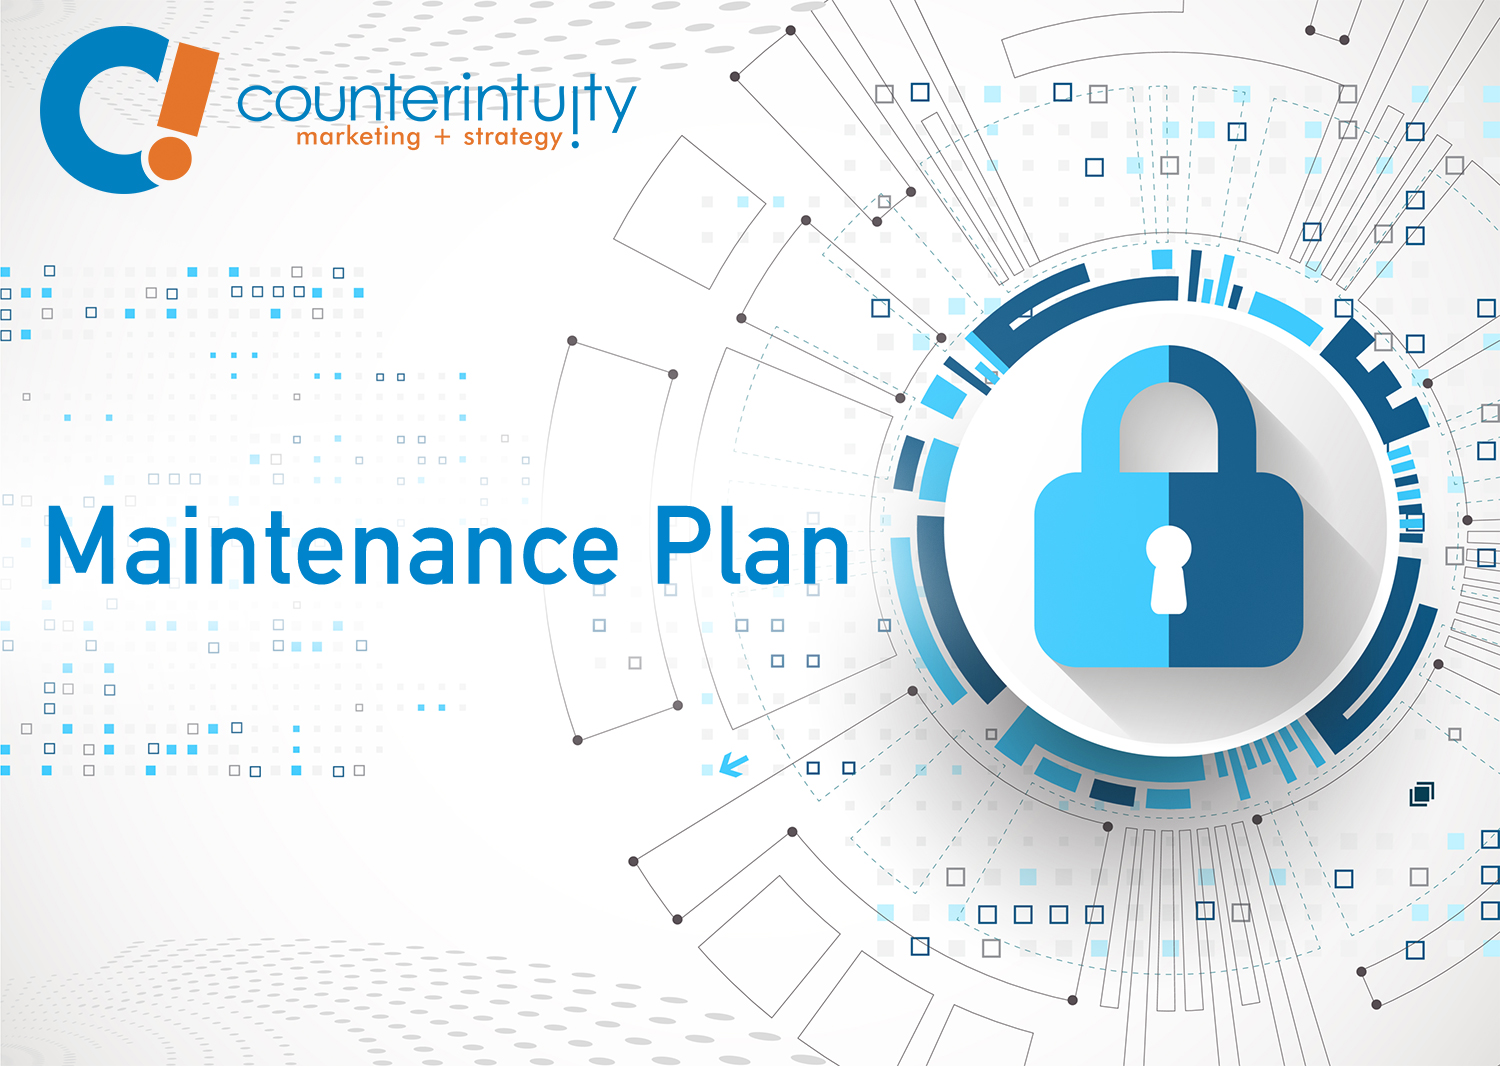 Counterintuity's Maintenance Plan